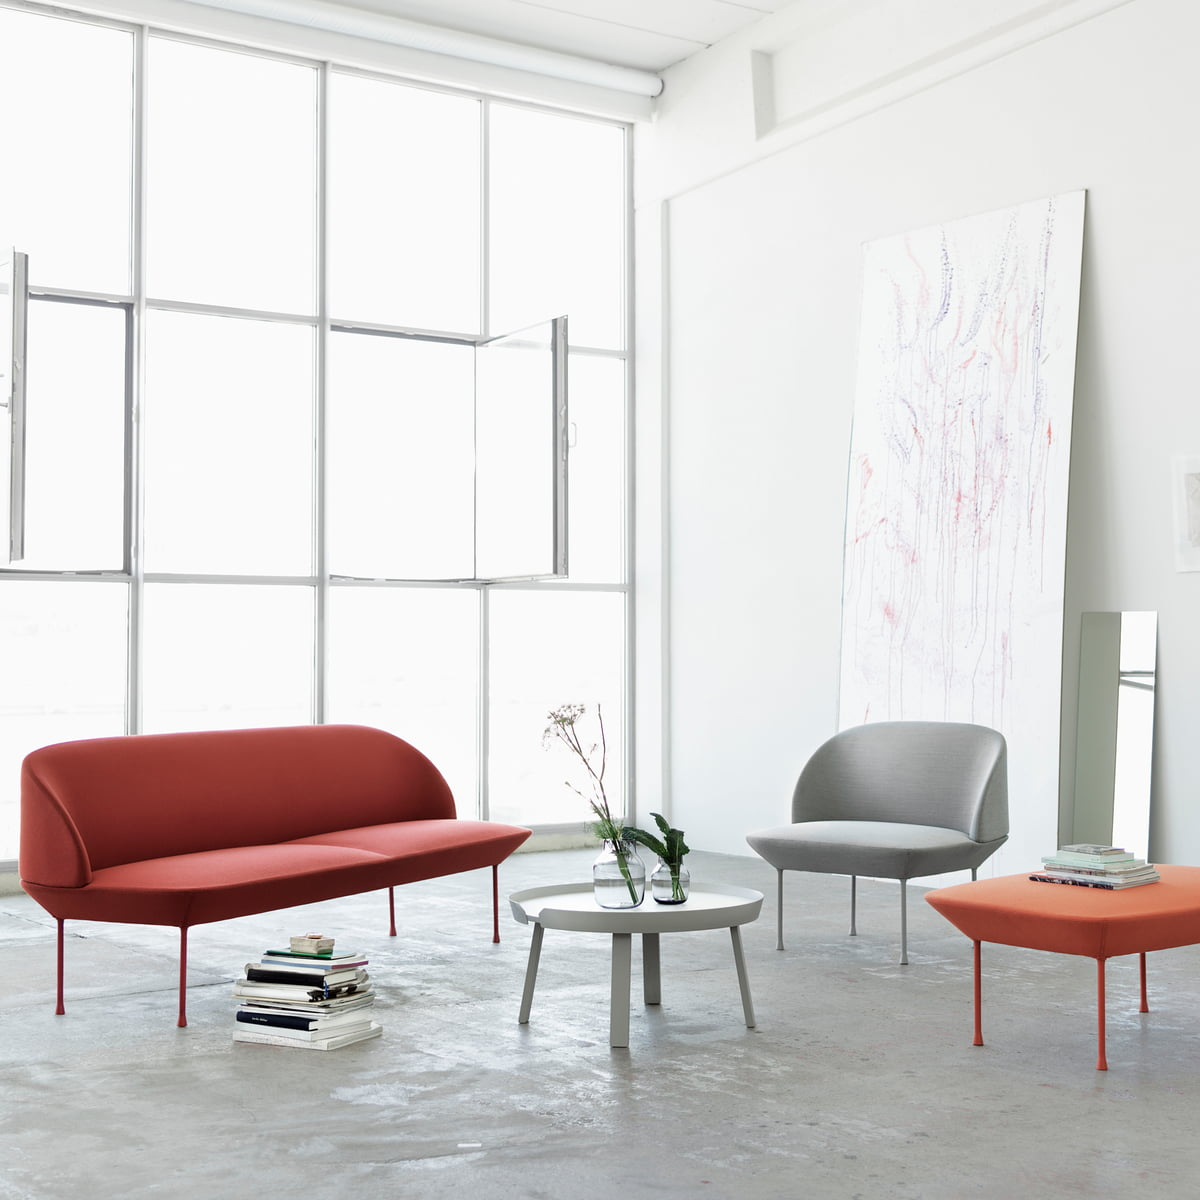 Ekstra The Oslo Sofa by Muuto in the shop GD-38